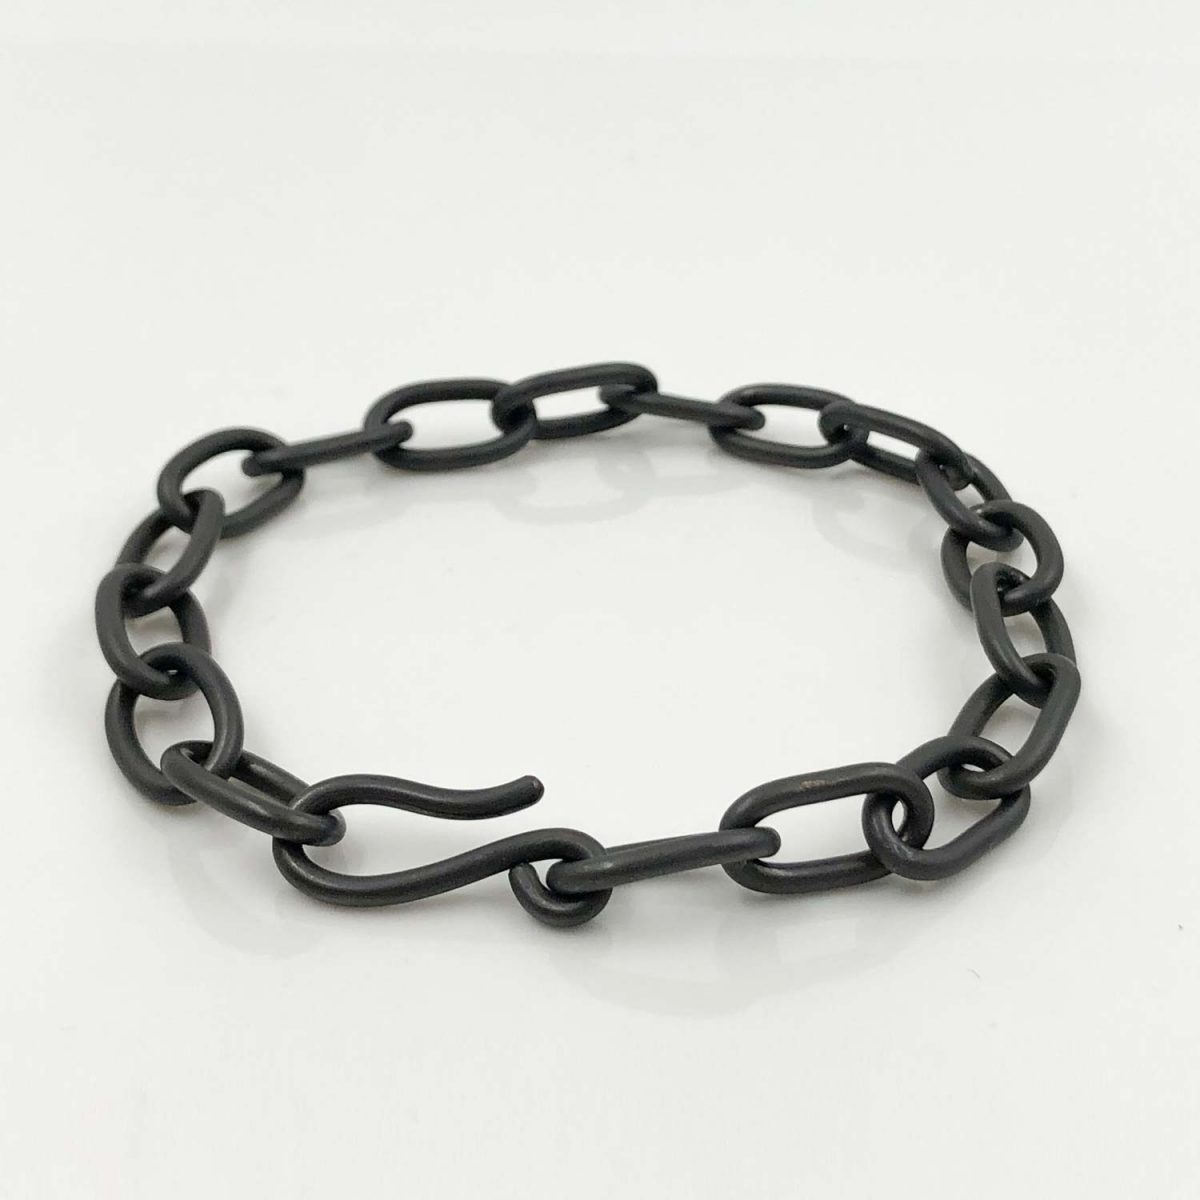 Tantal Armband Tantal TheChain MensCollection No12